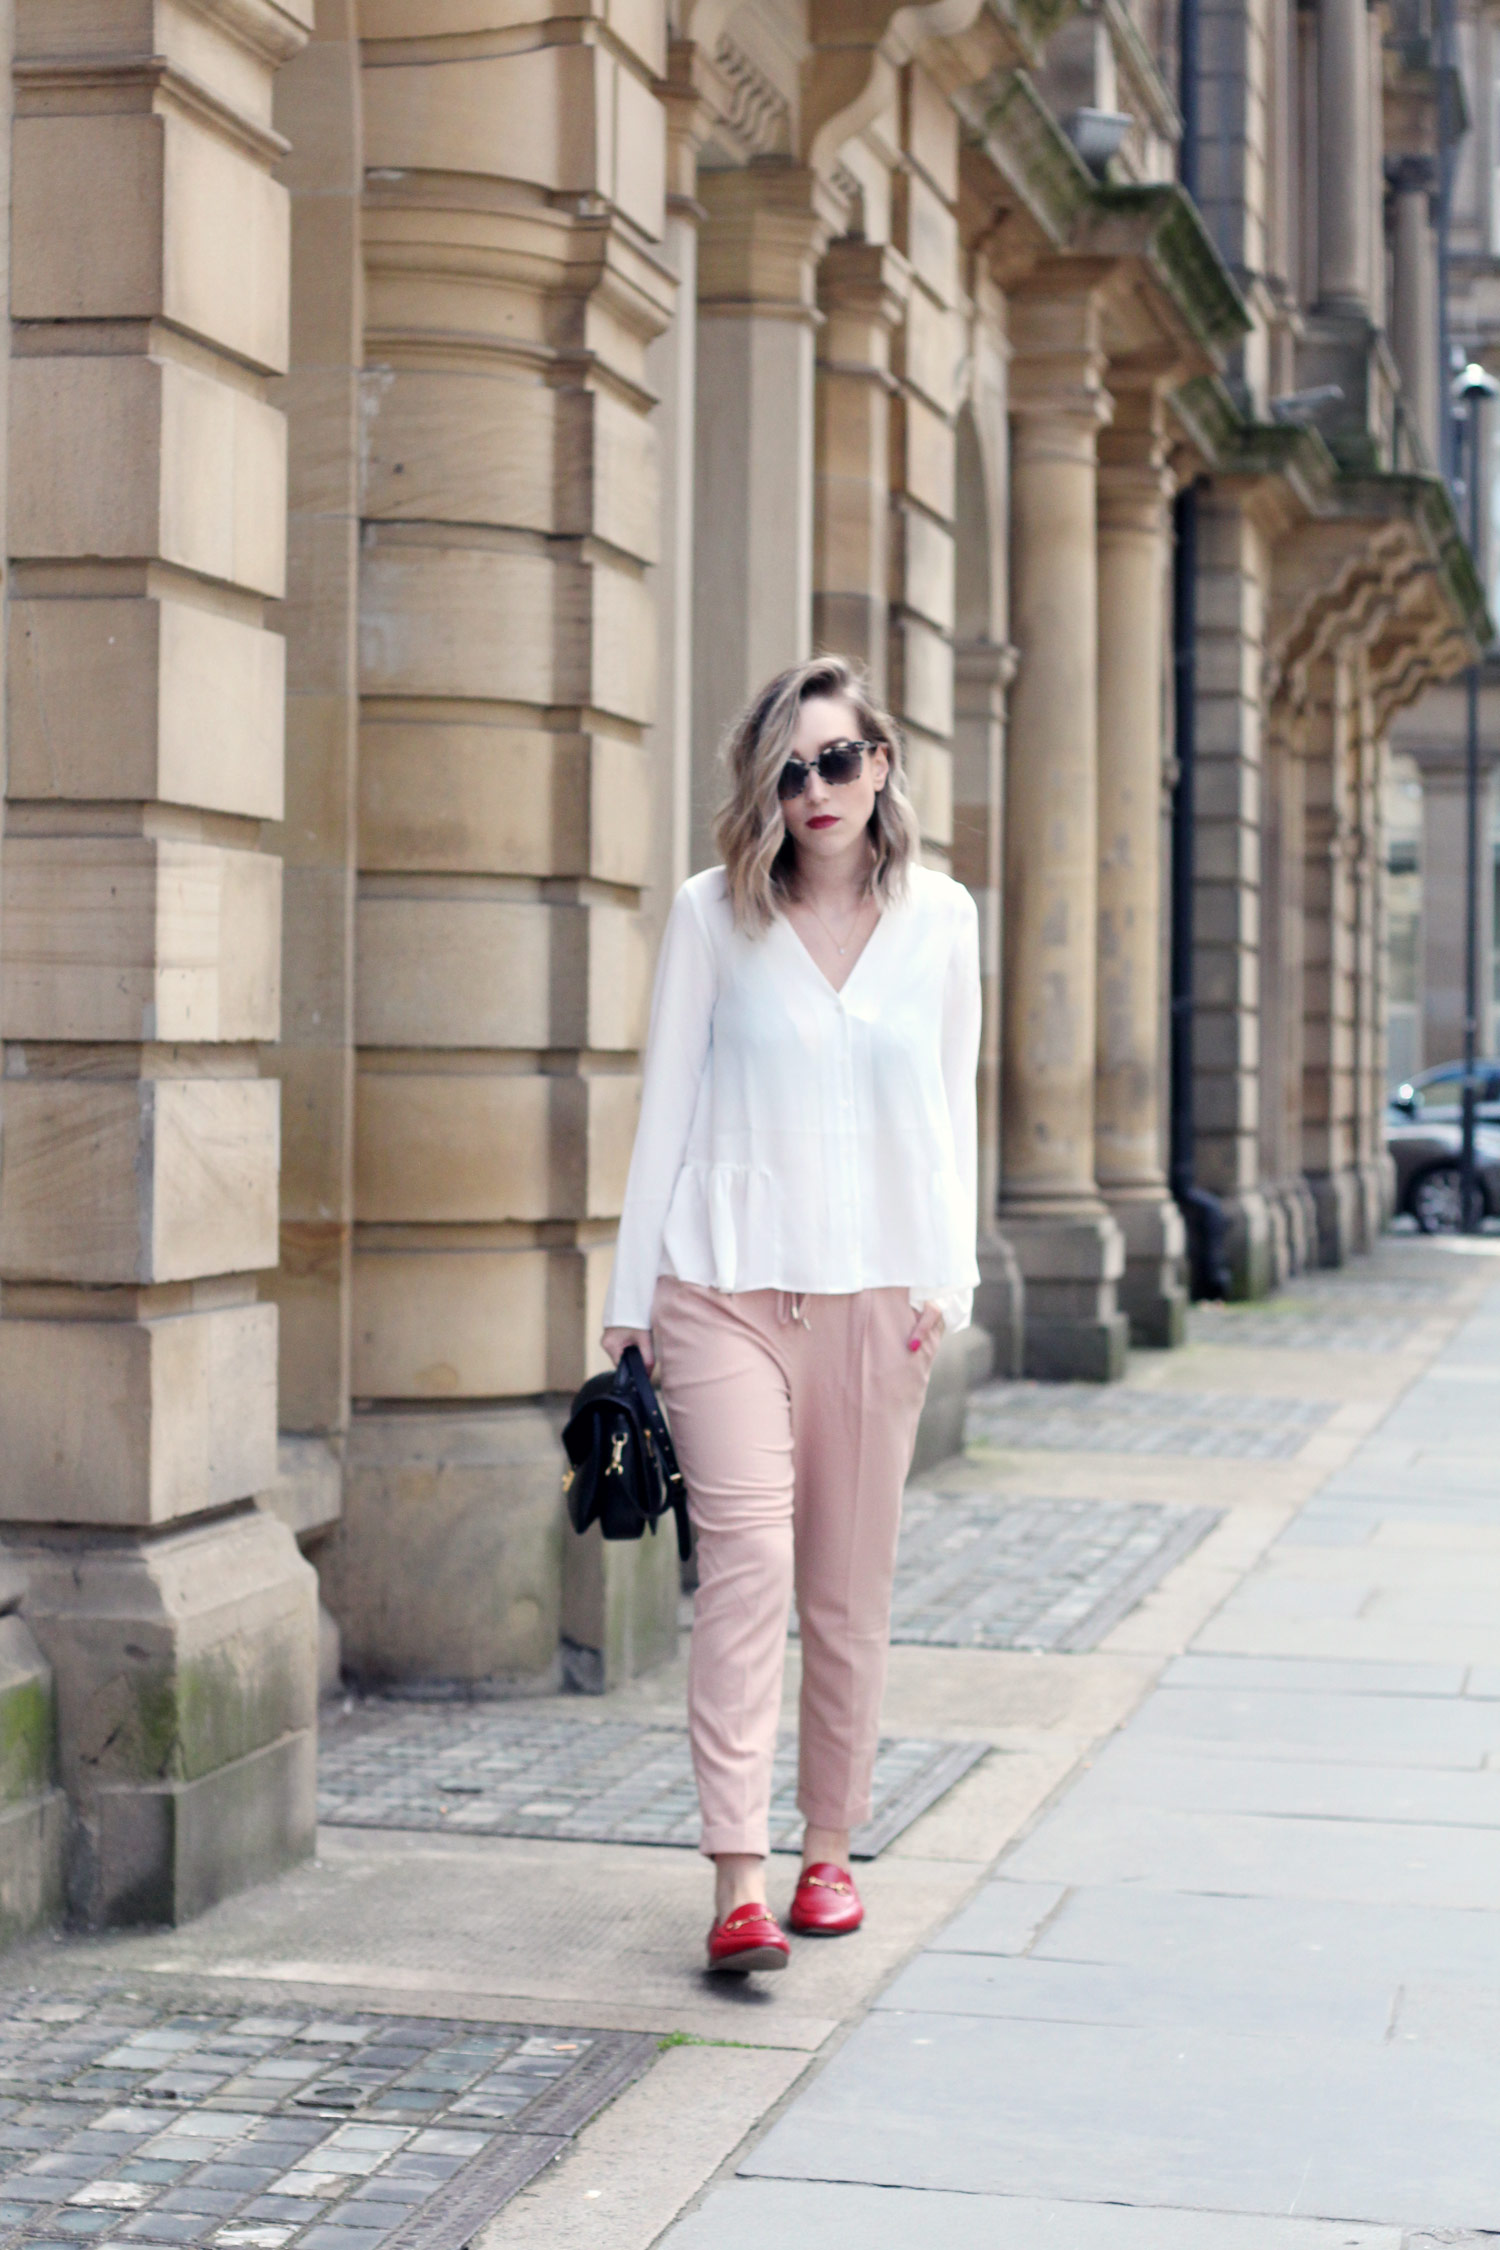 asos-white-ruffle-hem-blouse-M&S-pink-tie-trousers-gucci-jordaan-loafers-red-2